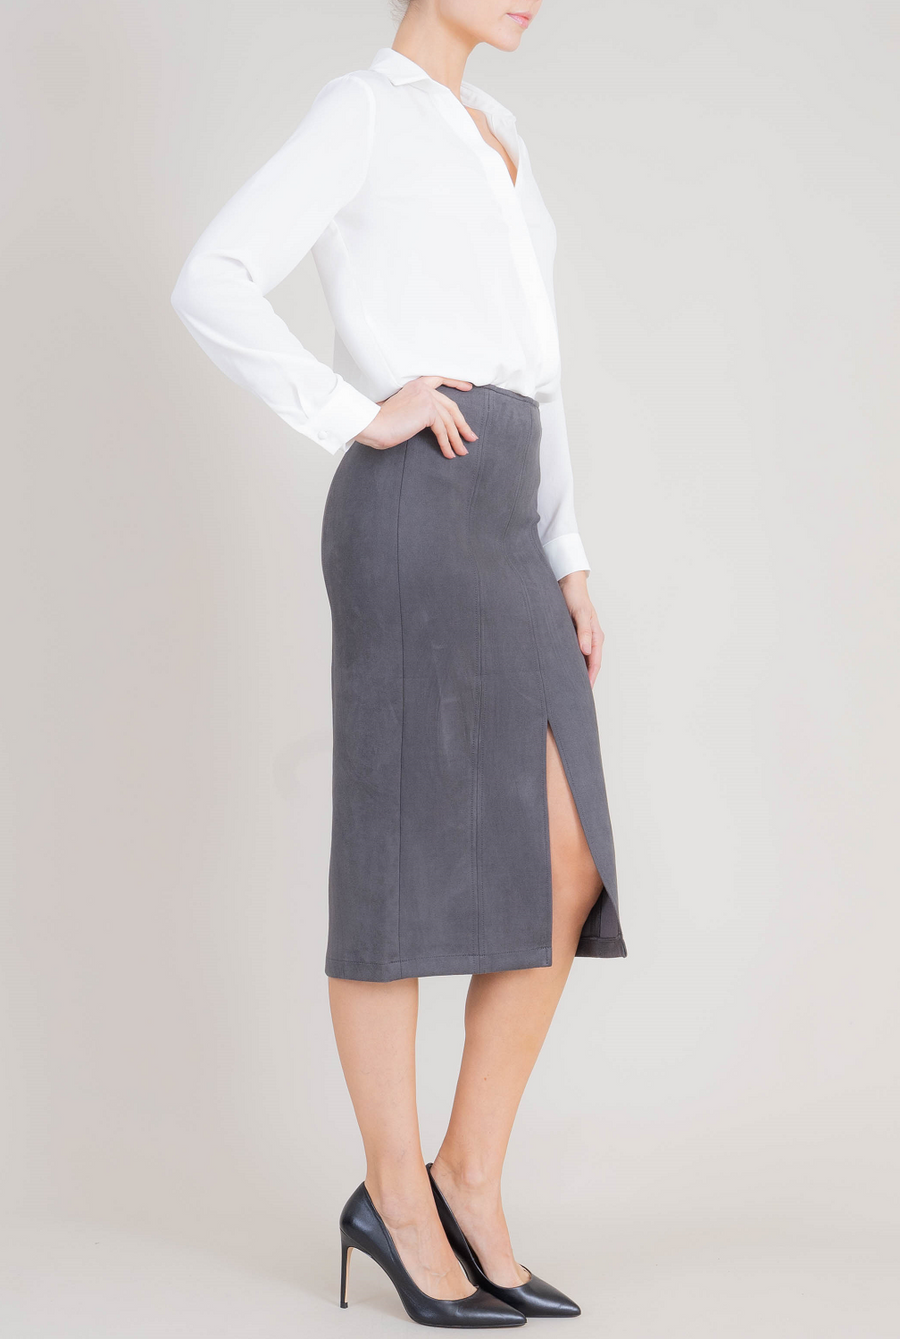 Connie Faux Suede Skirt - level99jeans